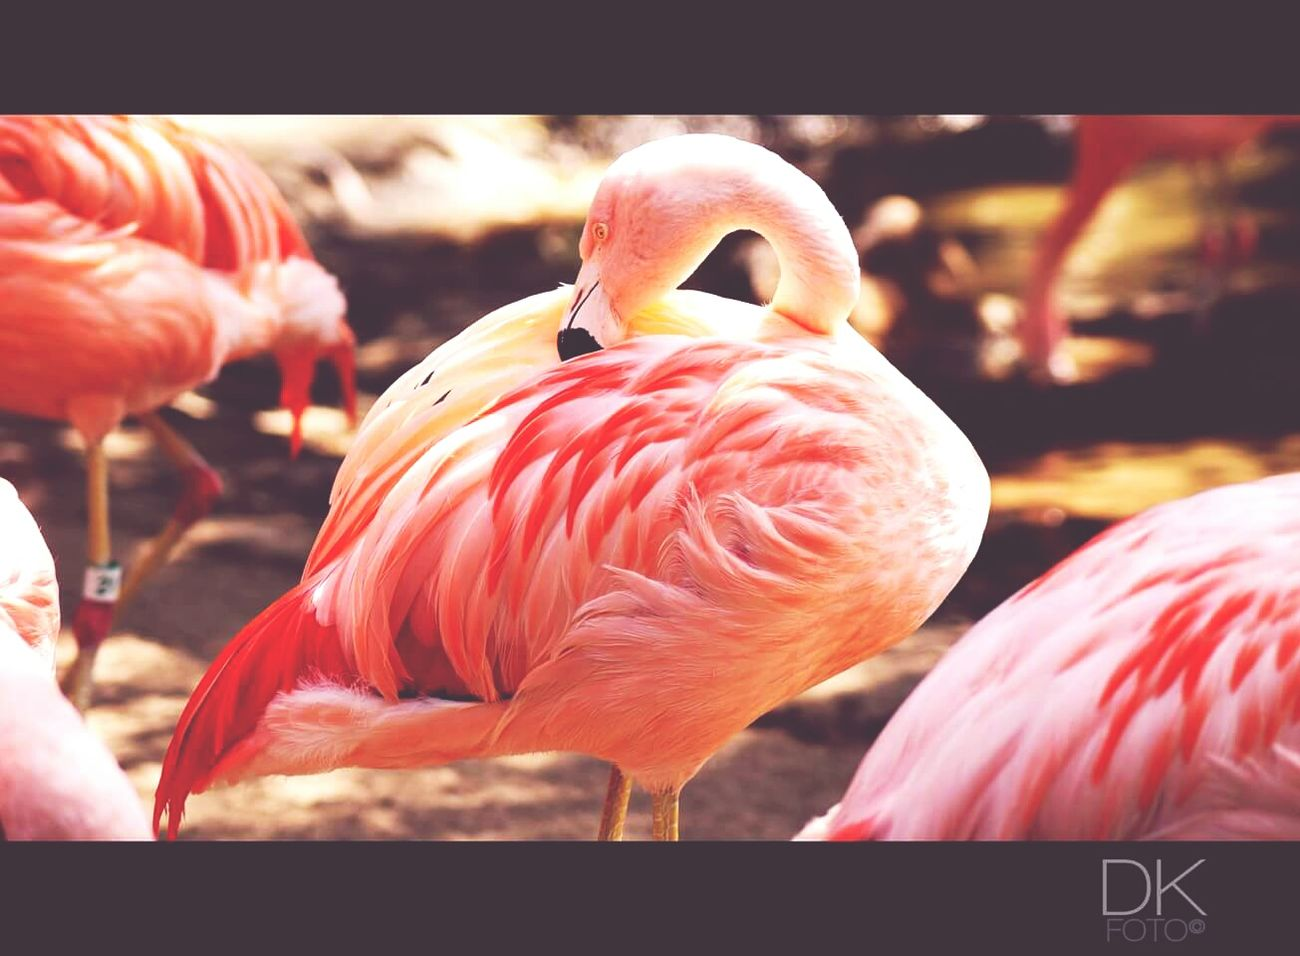 P I N K Pink Bird Flamingo Lazoo Zoo Losangeles California Nature